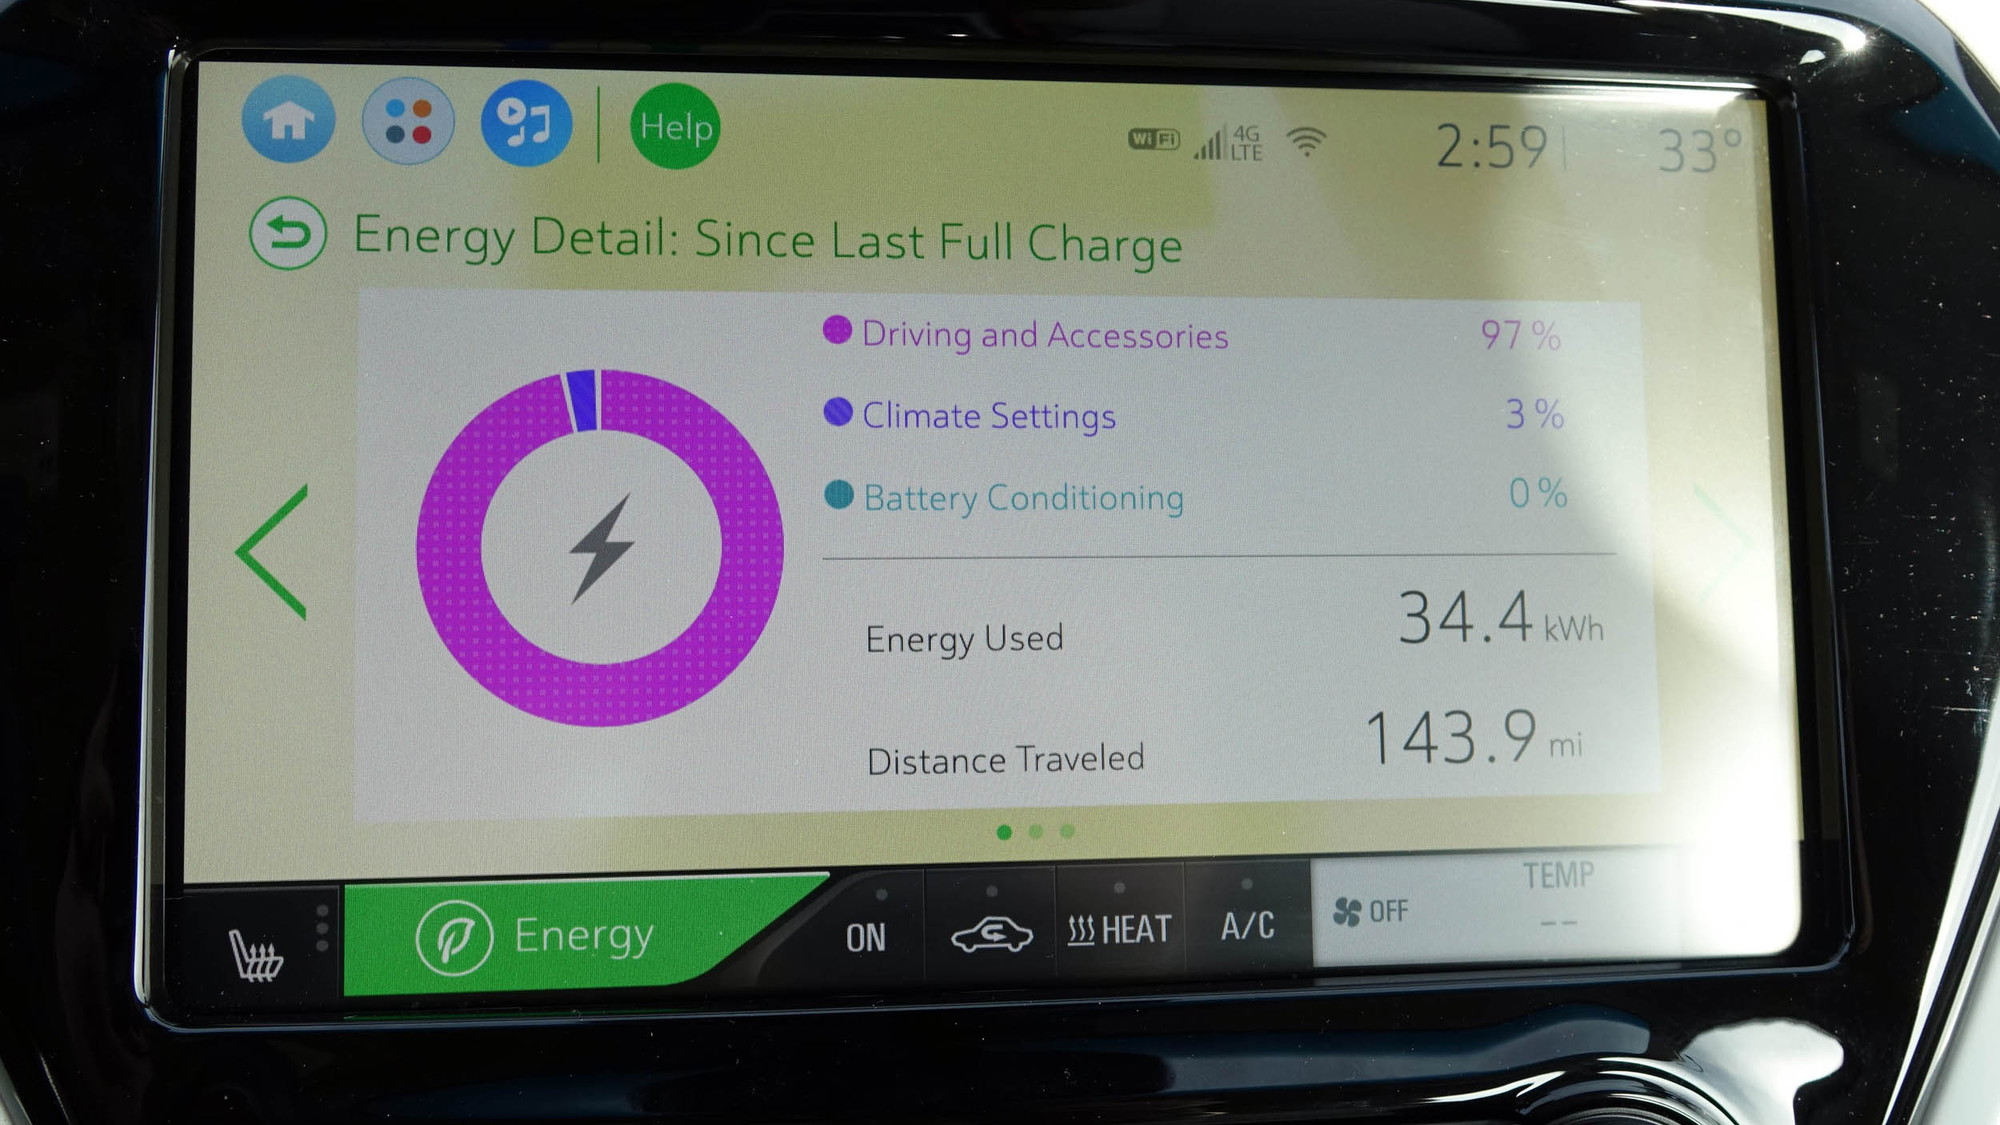 2019 Chevrolet Bolt EV after 143.9-mile roundtrip from Denver to Frisco, Colorado